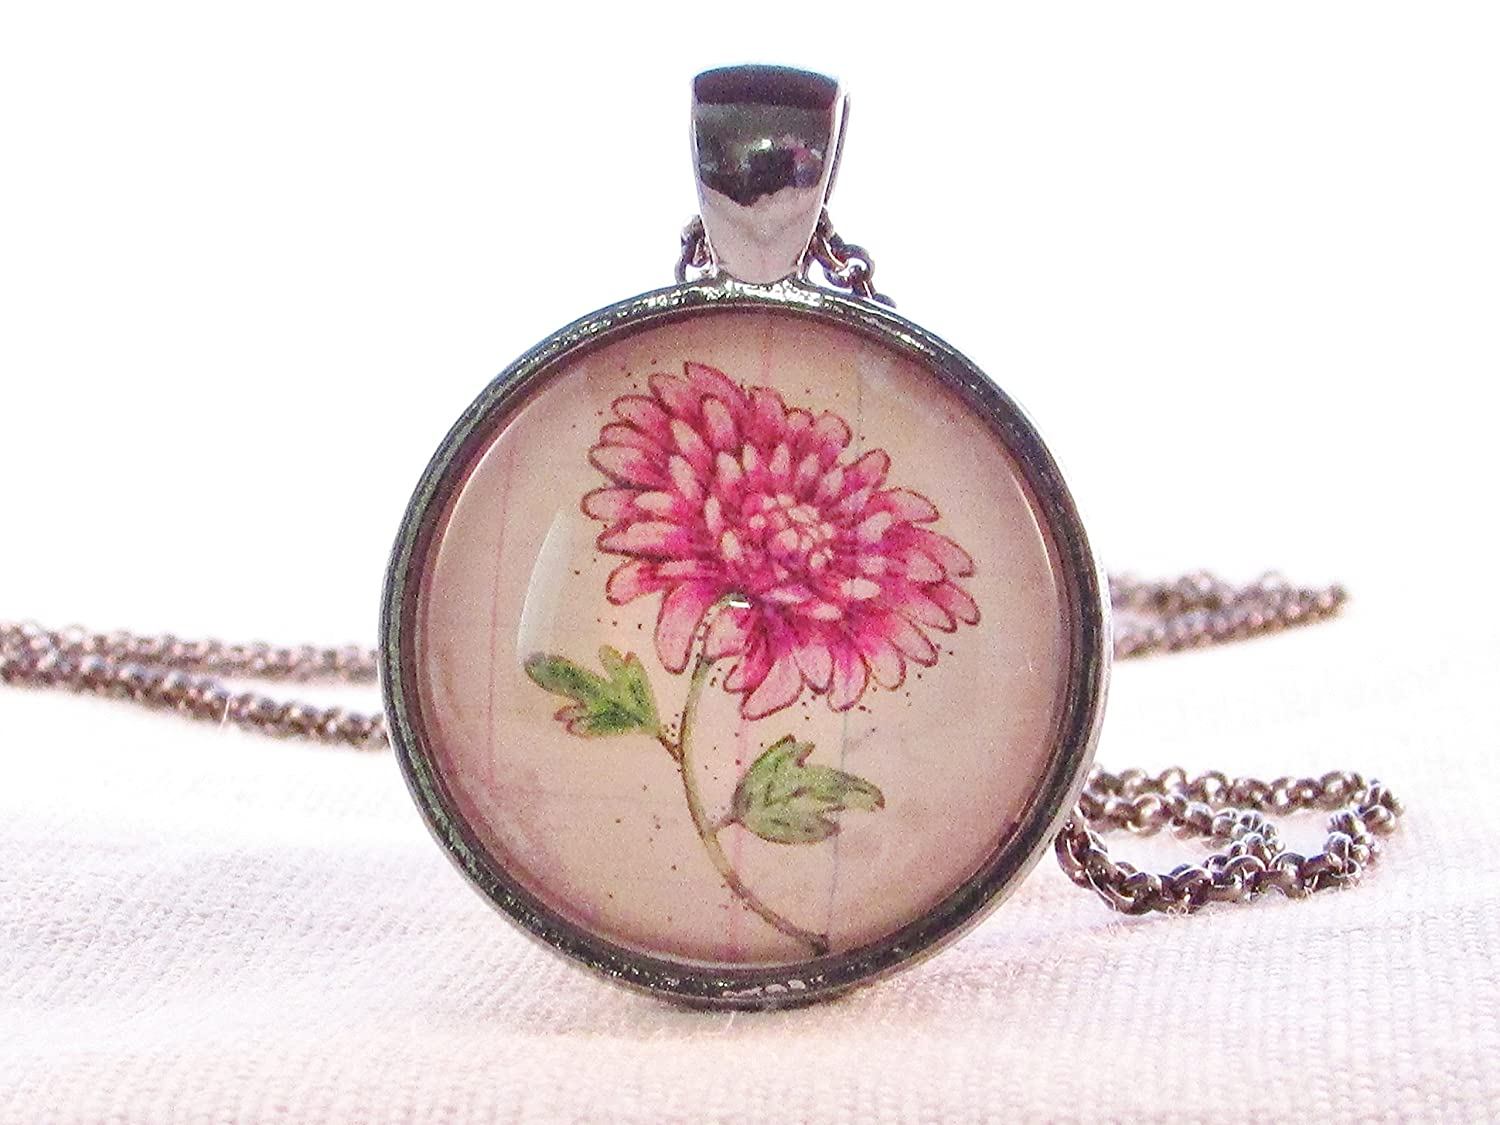 Necklace Pendant Birth Month November Flower Chrysanthemum